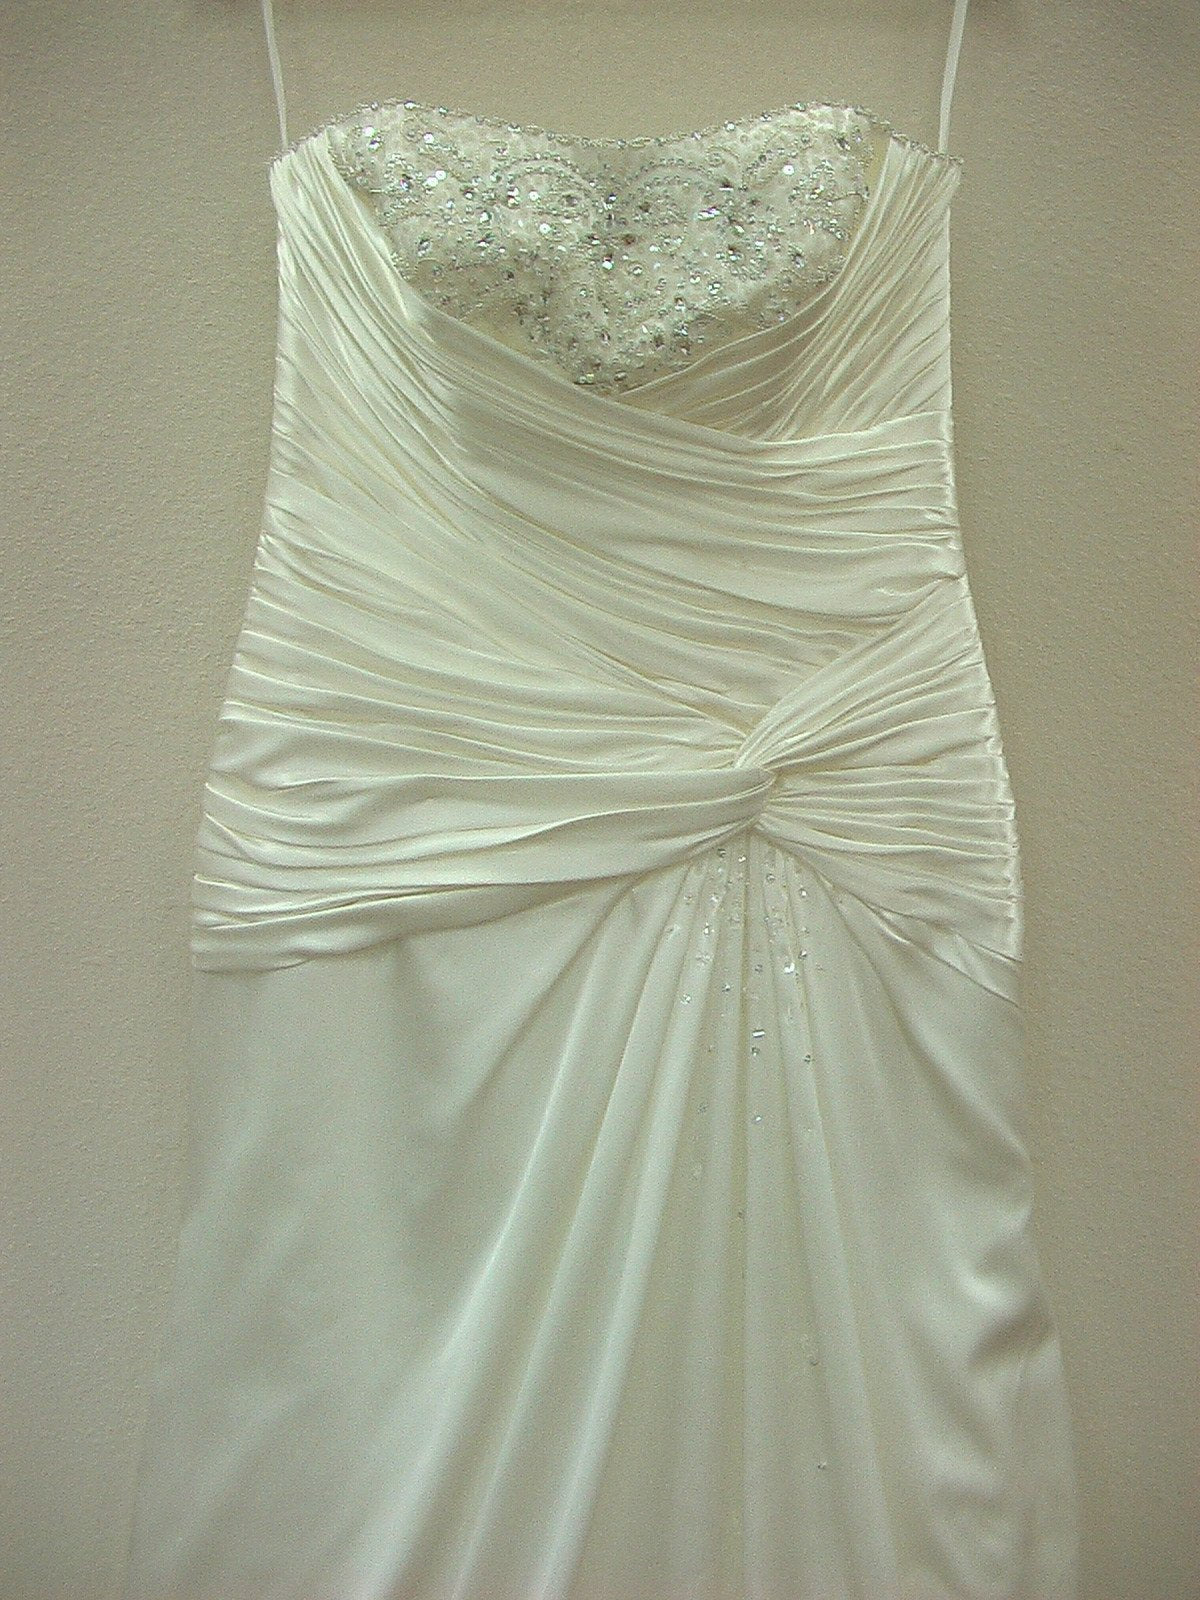 Mori Lee Blu 4607 Ivory/Silver size 10 In Stock Wedding Dress - Tom's Bridal